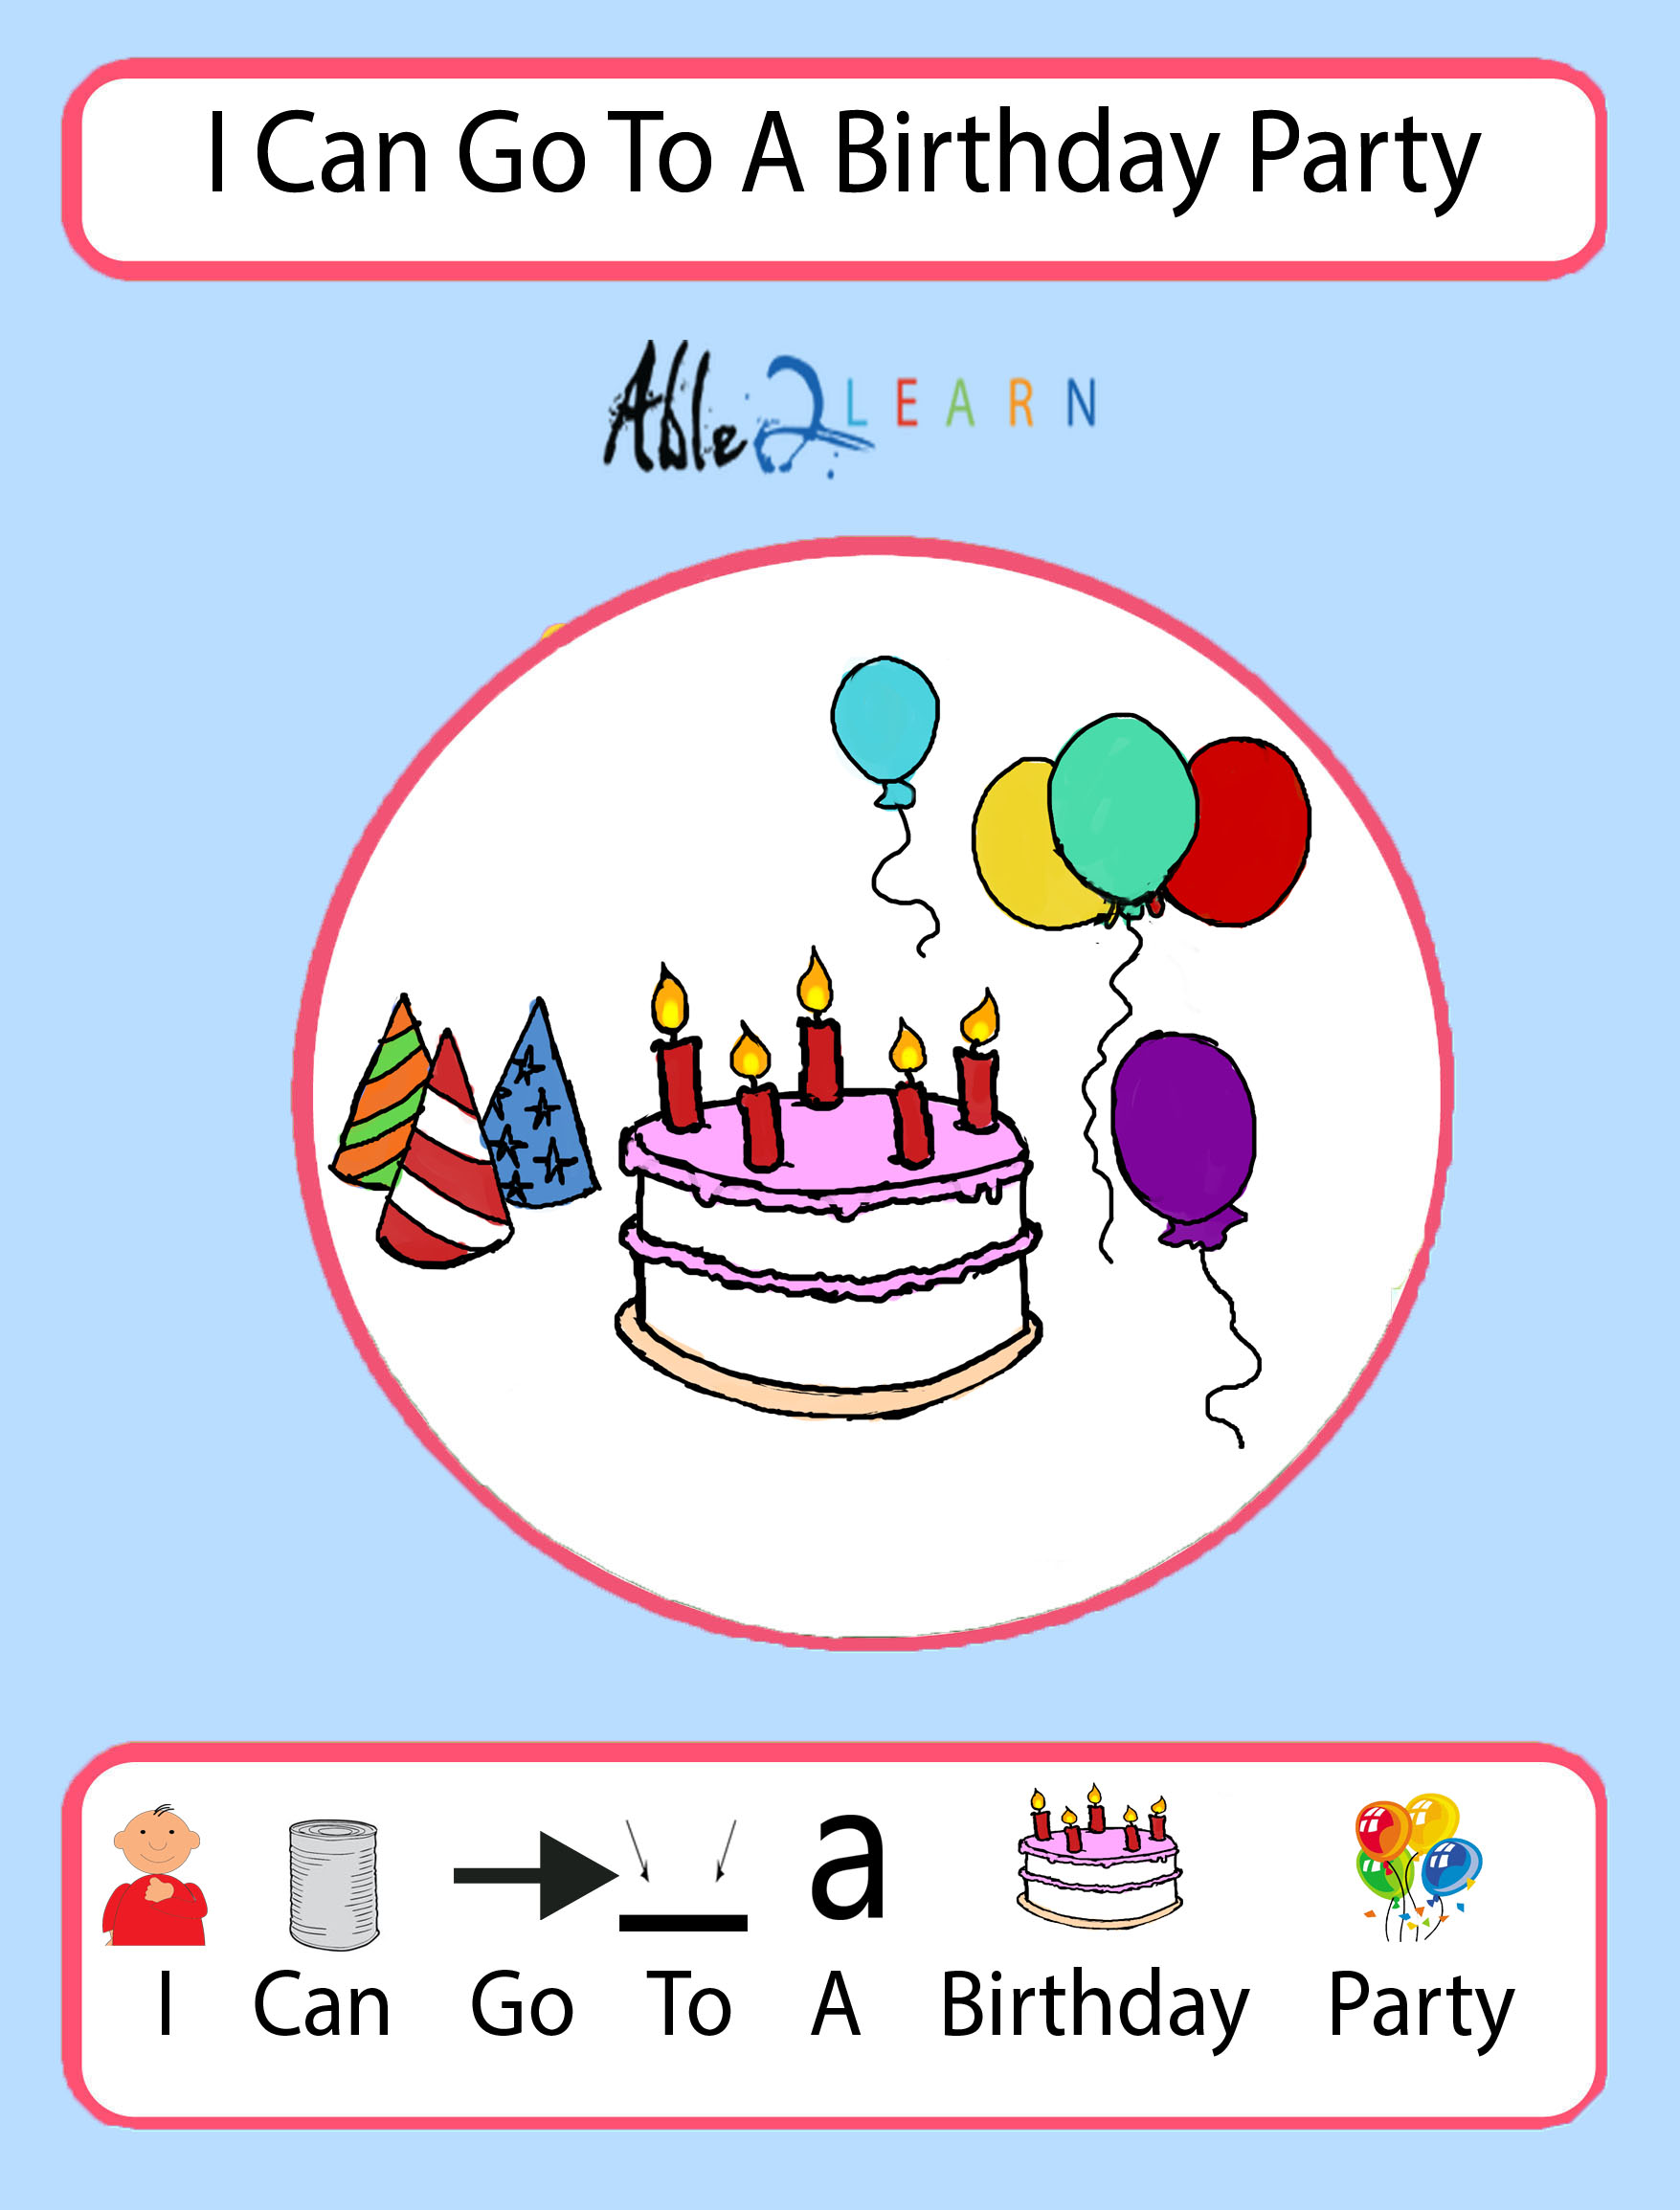 i-am-going-to-a-birthday-party-social-story-social-story-free-social-stories-free-aba-resources-free-printable-worksheets-pre-k-life-skills-3.jpg